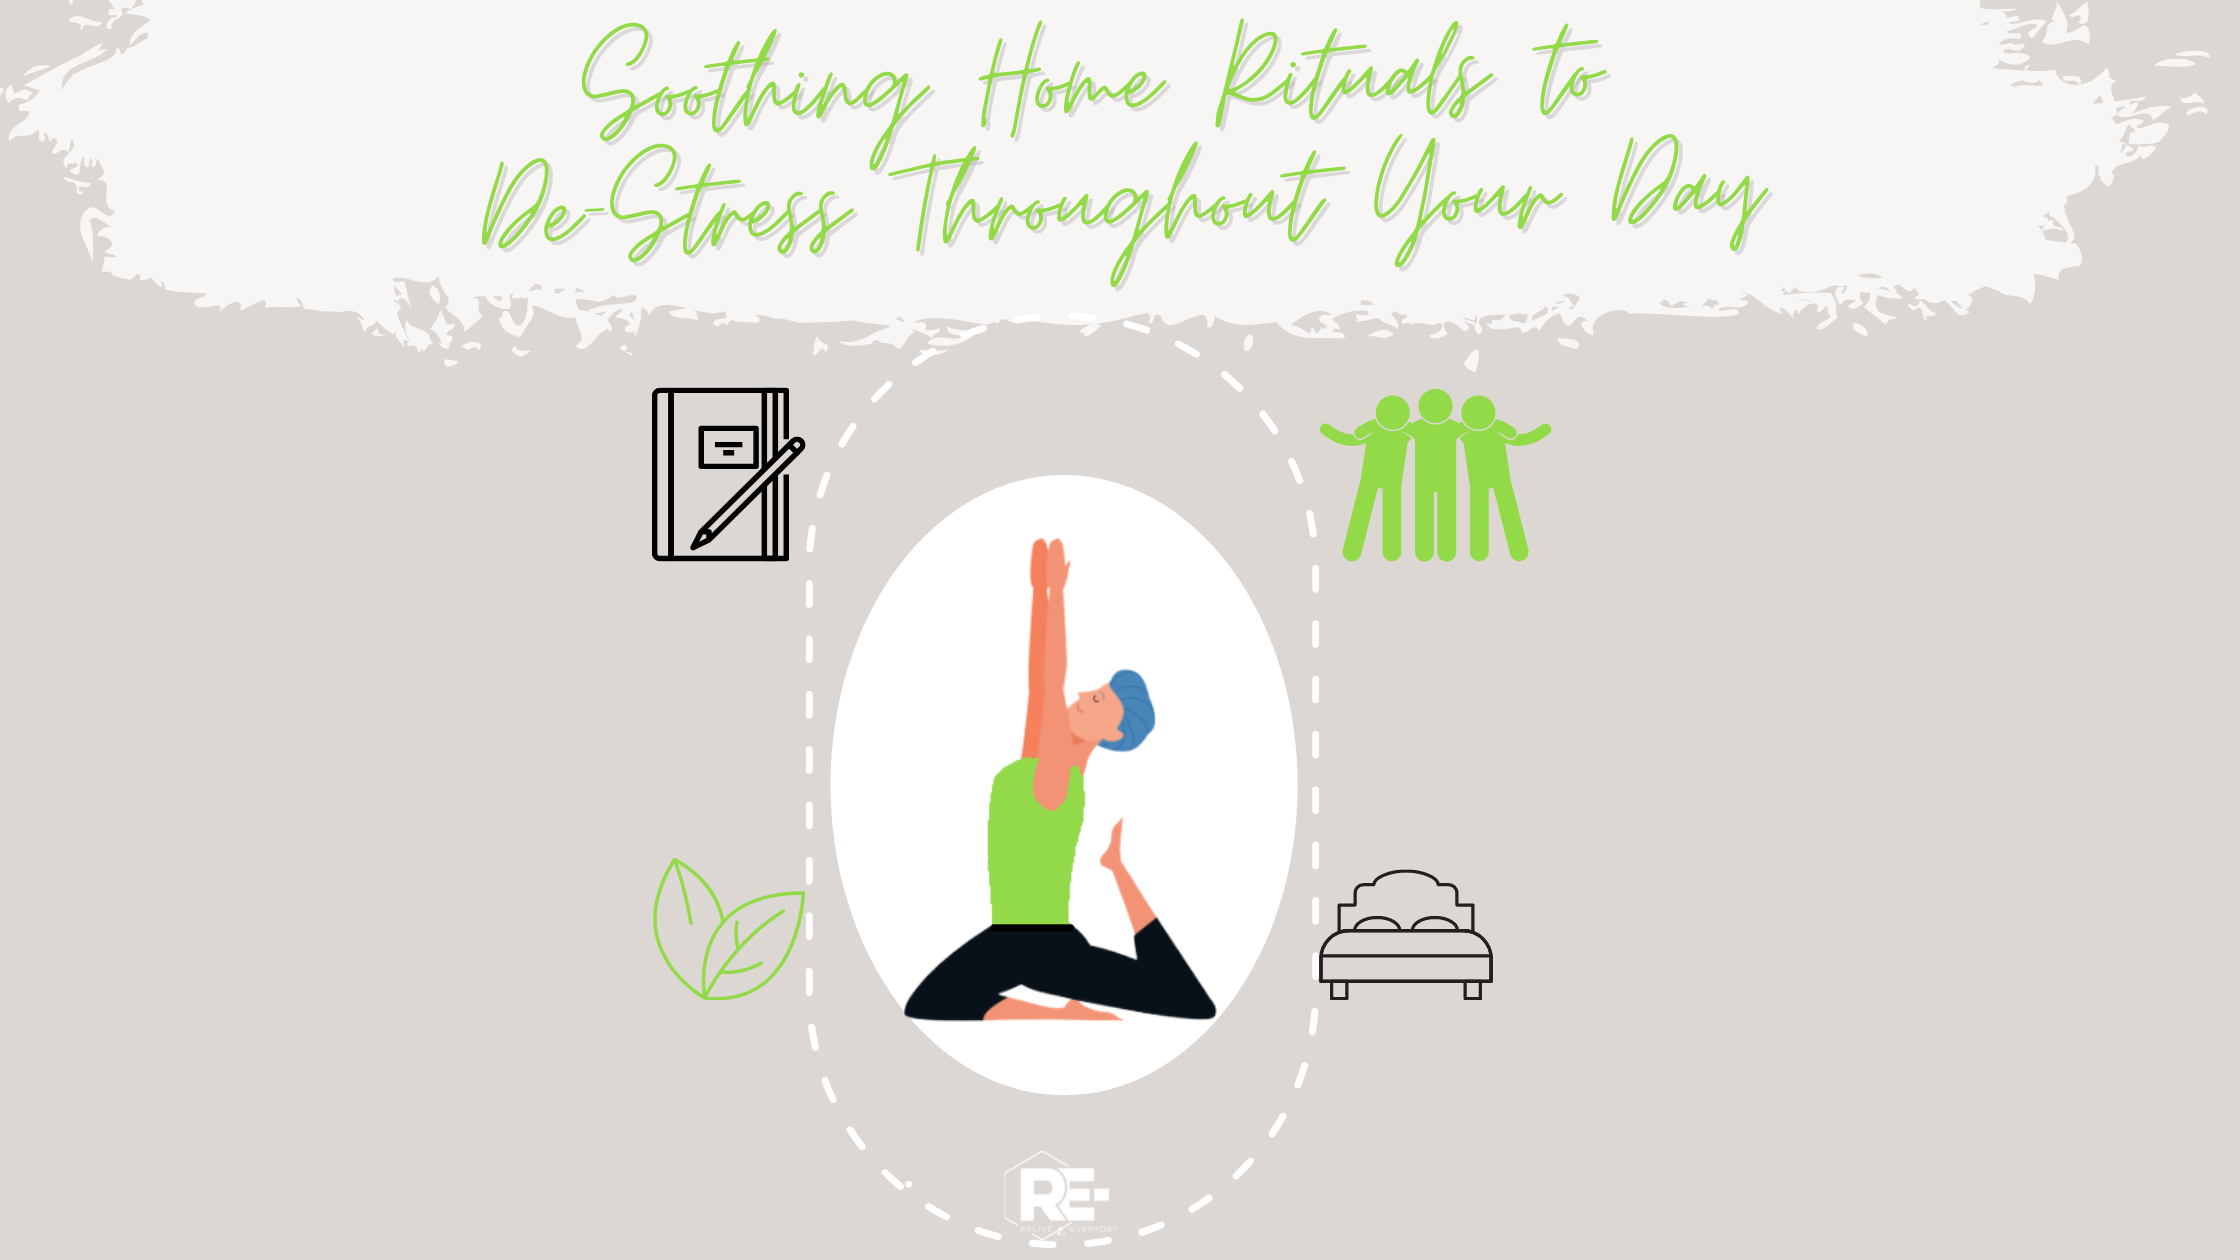 Soothing Home Rituals to De-Stress Throughout Your Day Blog Banner